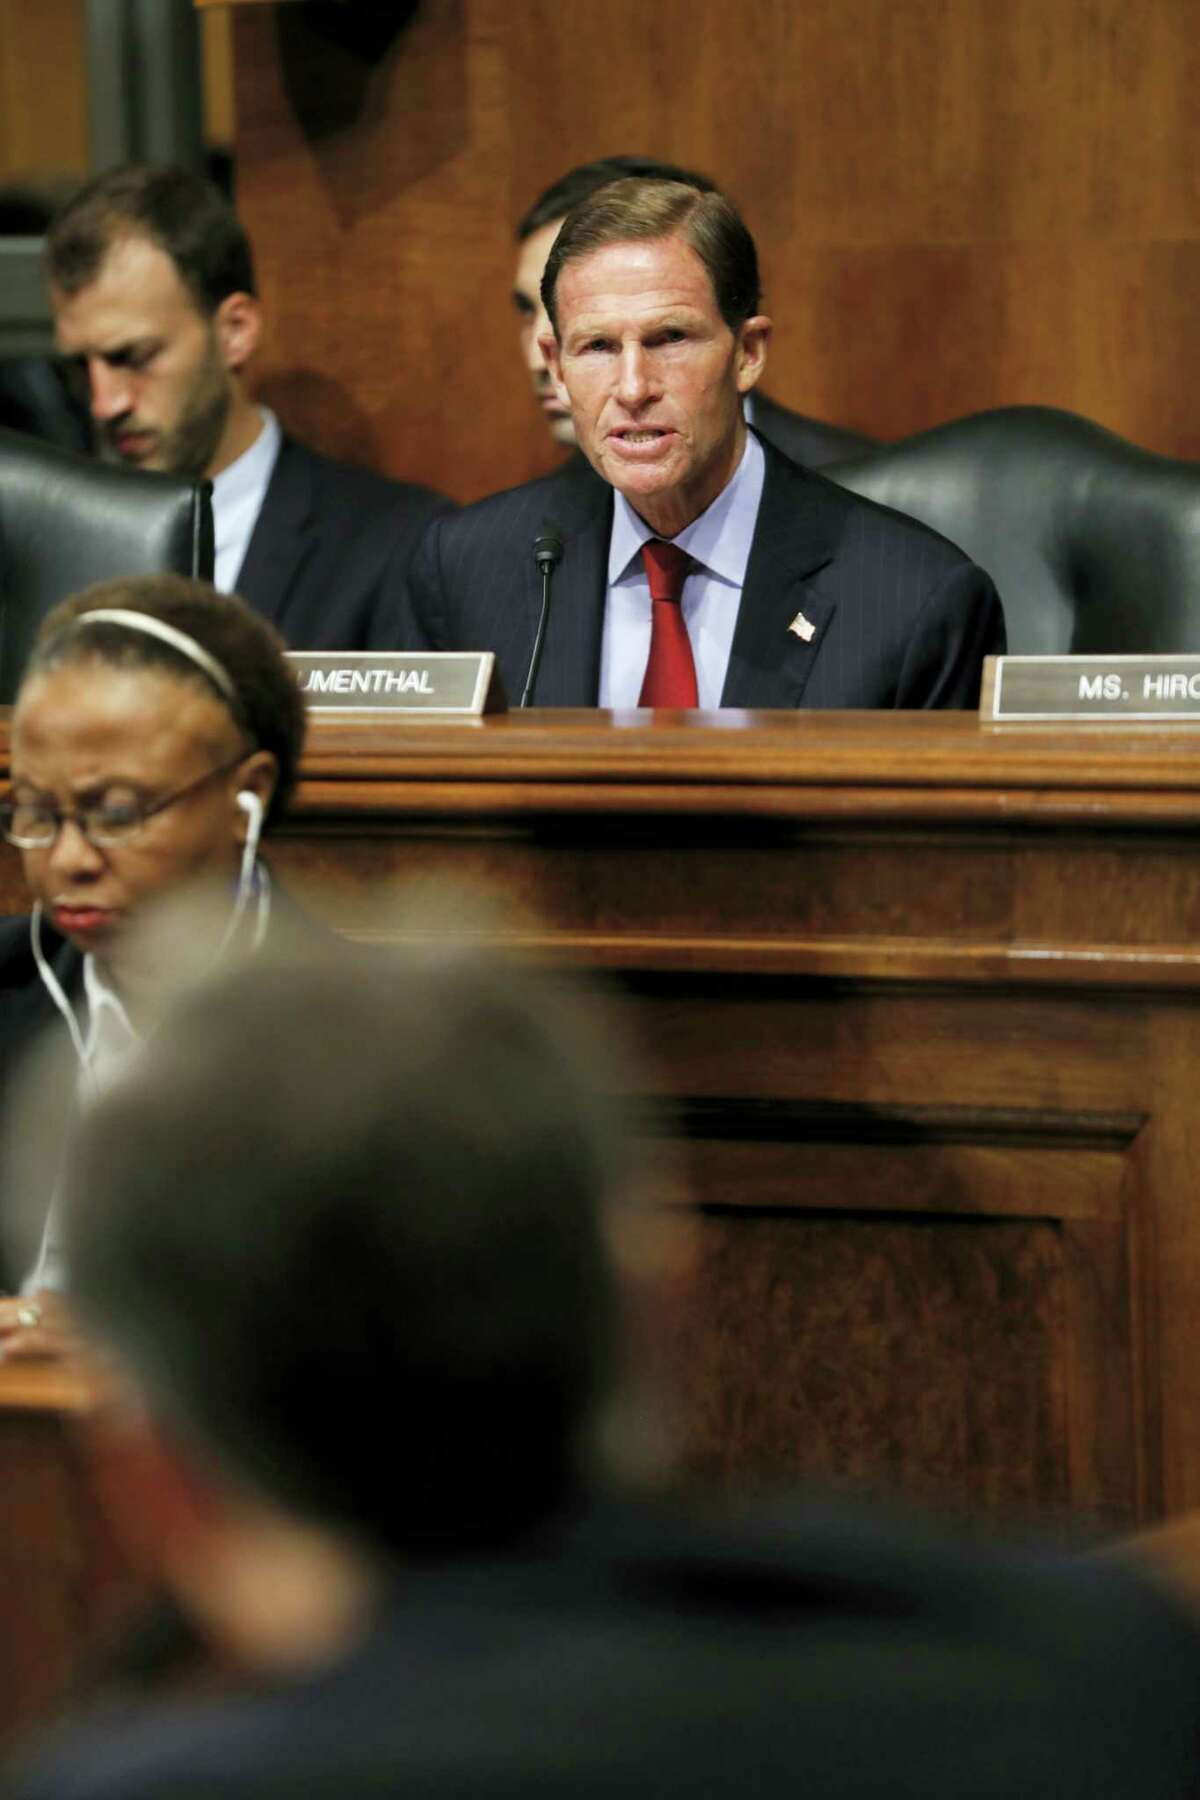 Senate Judiciary Committee member Sen. Richard Blumenthal, D-Conn. questions FBI Director nominee Christopher Wray on Capitol Hill in Washington, Wednesday, July 12, 2017, during Wray's confirmation hearing before the committee.